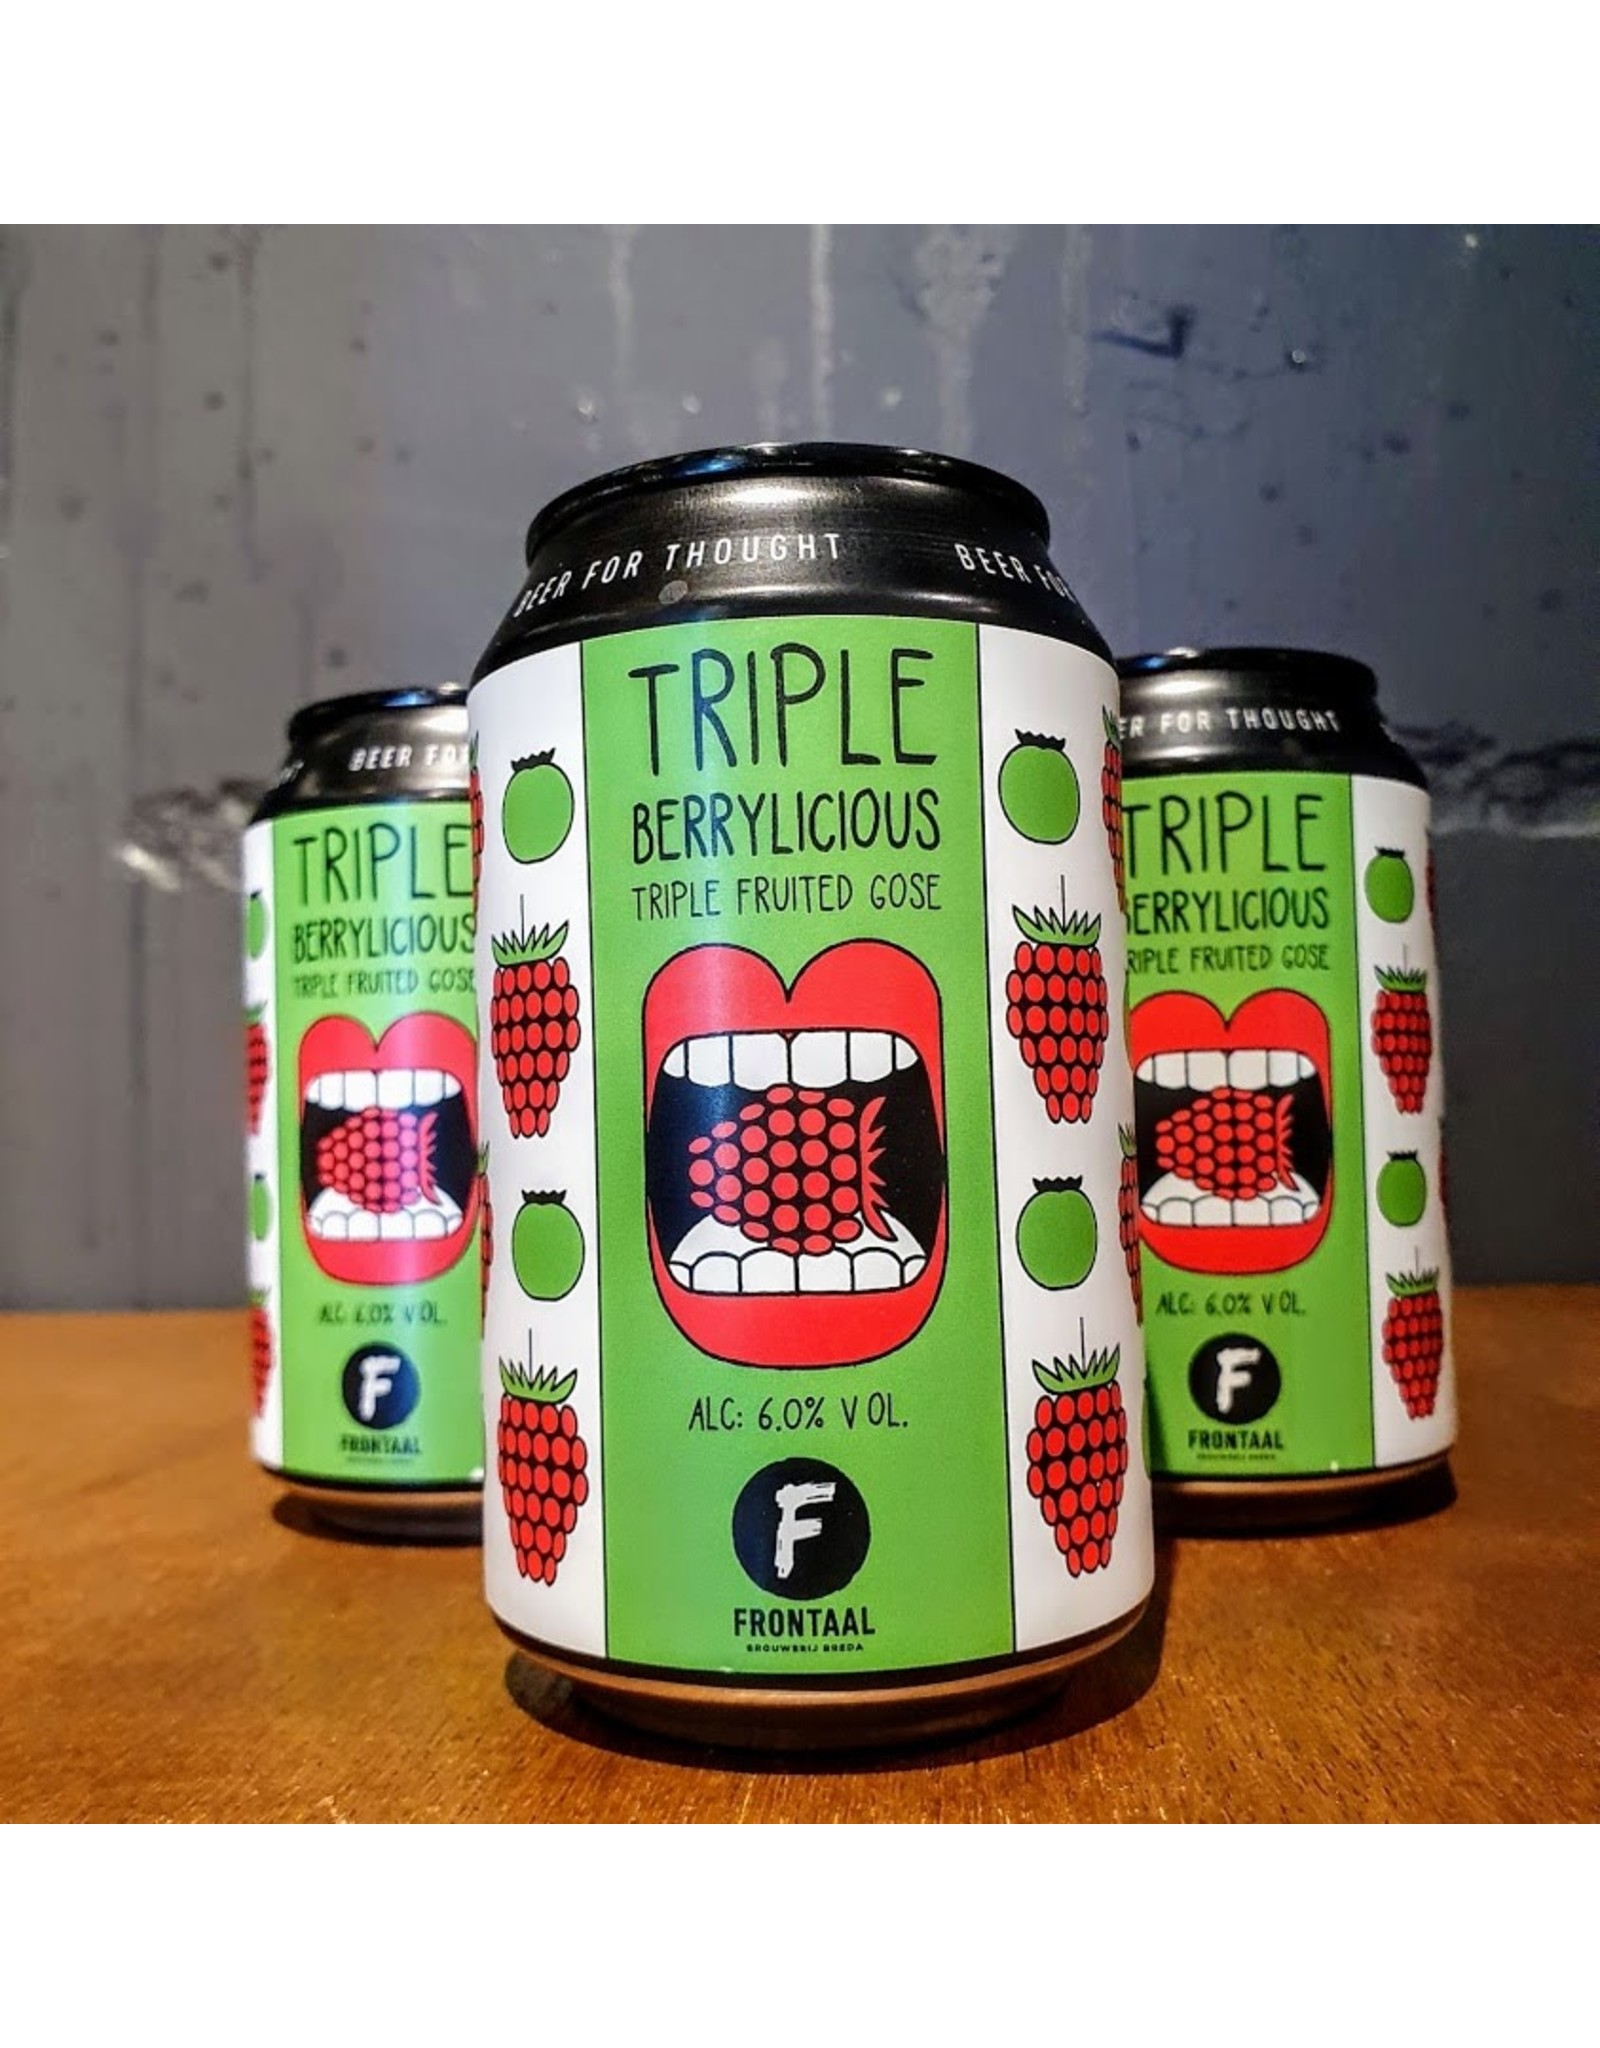 Frontaal: Triple berrylicious